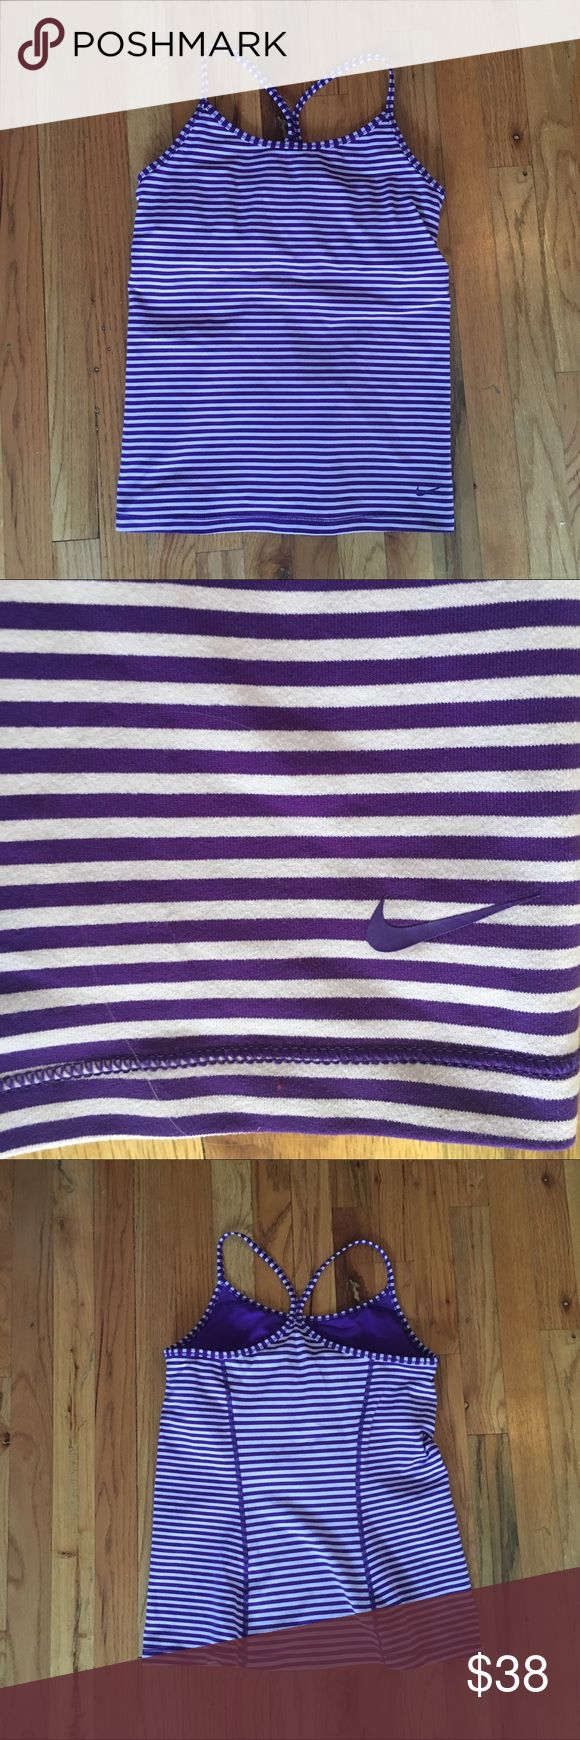 Nike Slim Fit Striped Racerback Athletic Tank Top Gently worn Nike DriFit racerback tank top with built in shelf bra! Great for yoga, pilates and barre.  Please refer to final picture for most accurate color representation. Alternating stripes of purple and lilac. Pads included in built in shelf bra.  Fit runs true, hem hits near or at hips depending on height. Similar style to lululemon's Power Y tank top. Please ask any questions! Nike Tops Tank Tops